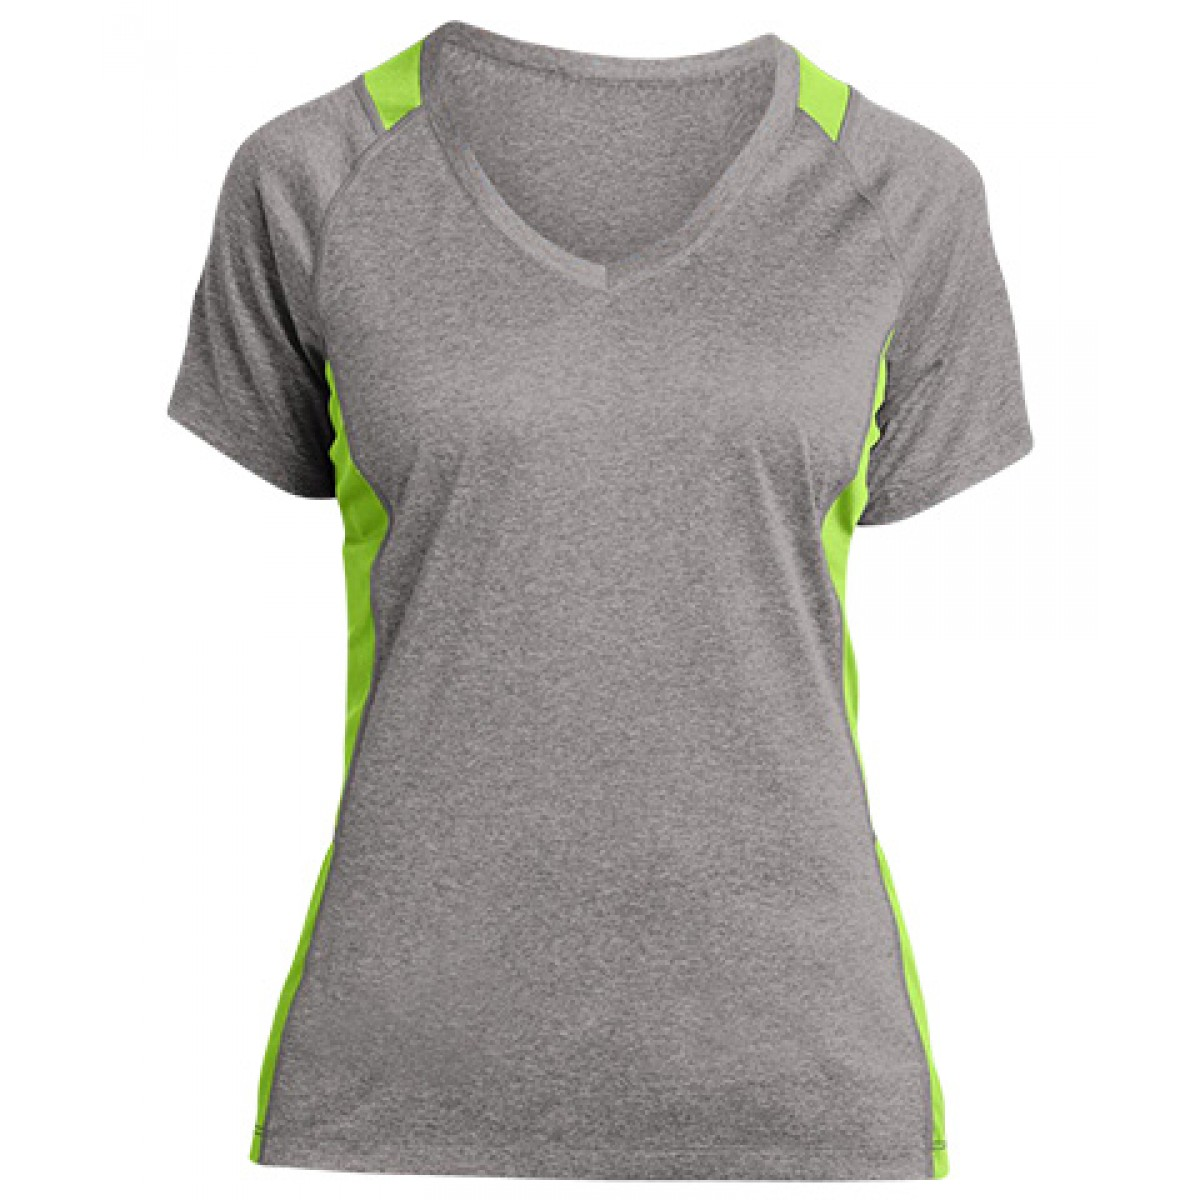 Ladies' Heather Colorblock Contender V-Neck Tee-Heather/Lime-XL